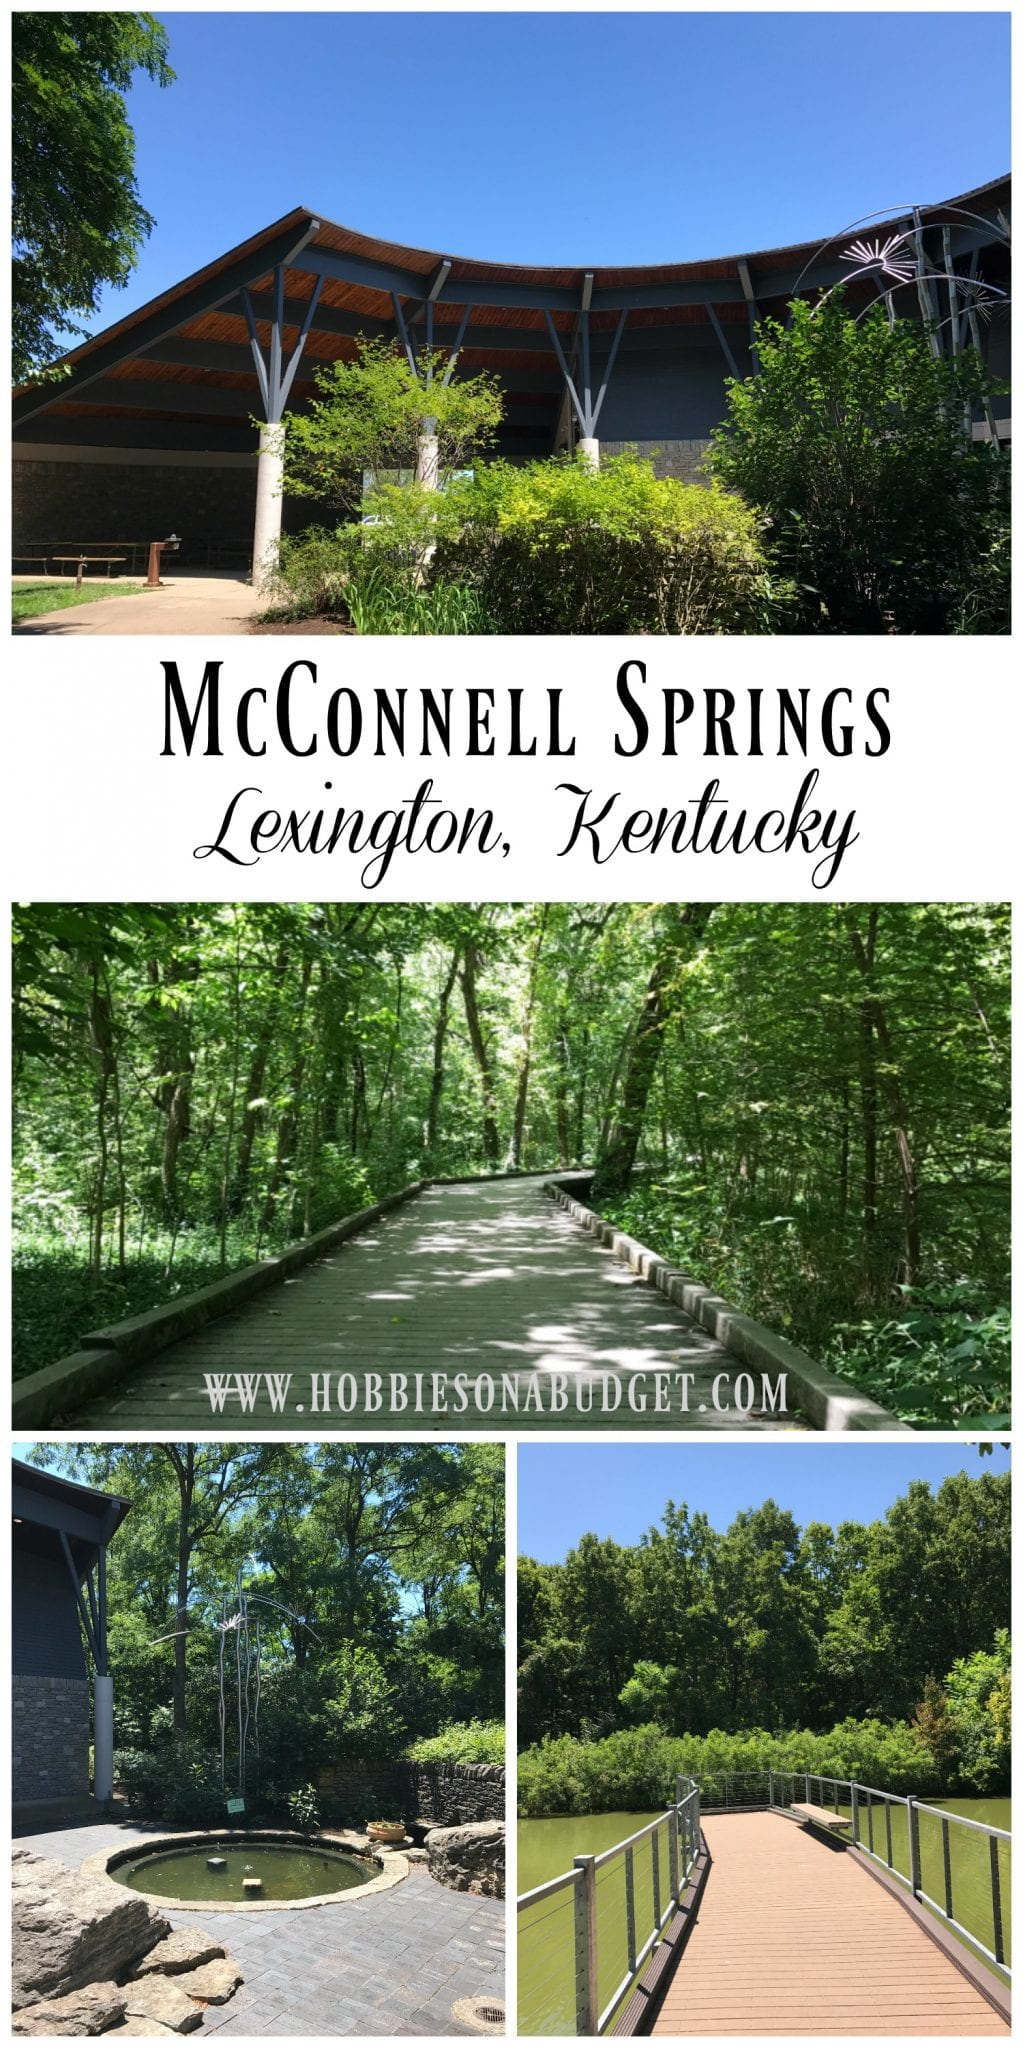 We love being outdoors in nature. There's just nothing better than enjoying time with family while hiking on a gentle trail through the woods.  McConnell Springs is a hidden treasure in the heart of downtown Lexington that we have come to love. And the price is FREE!